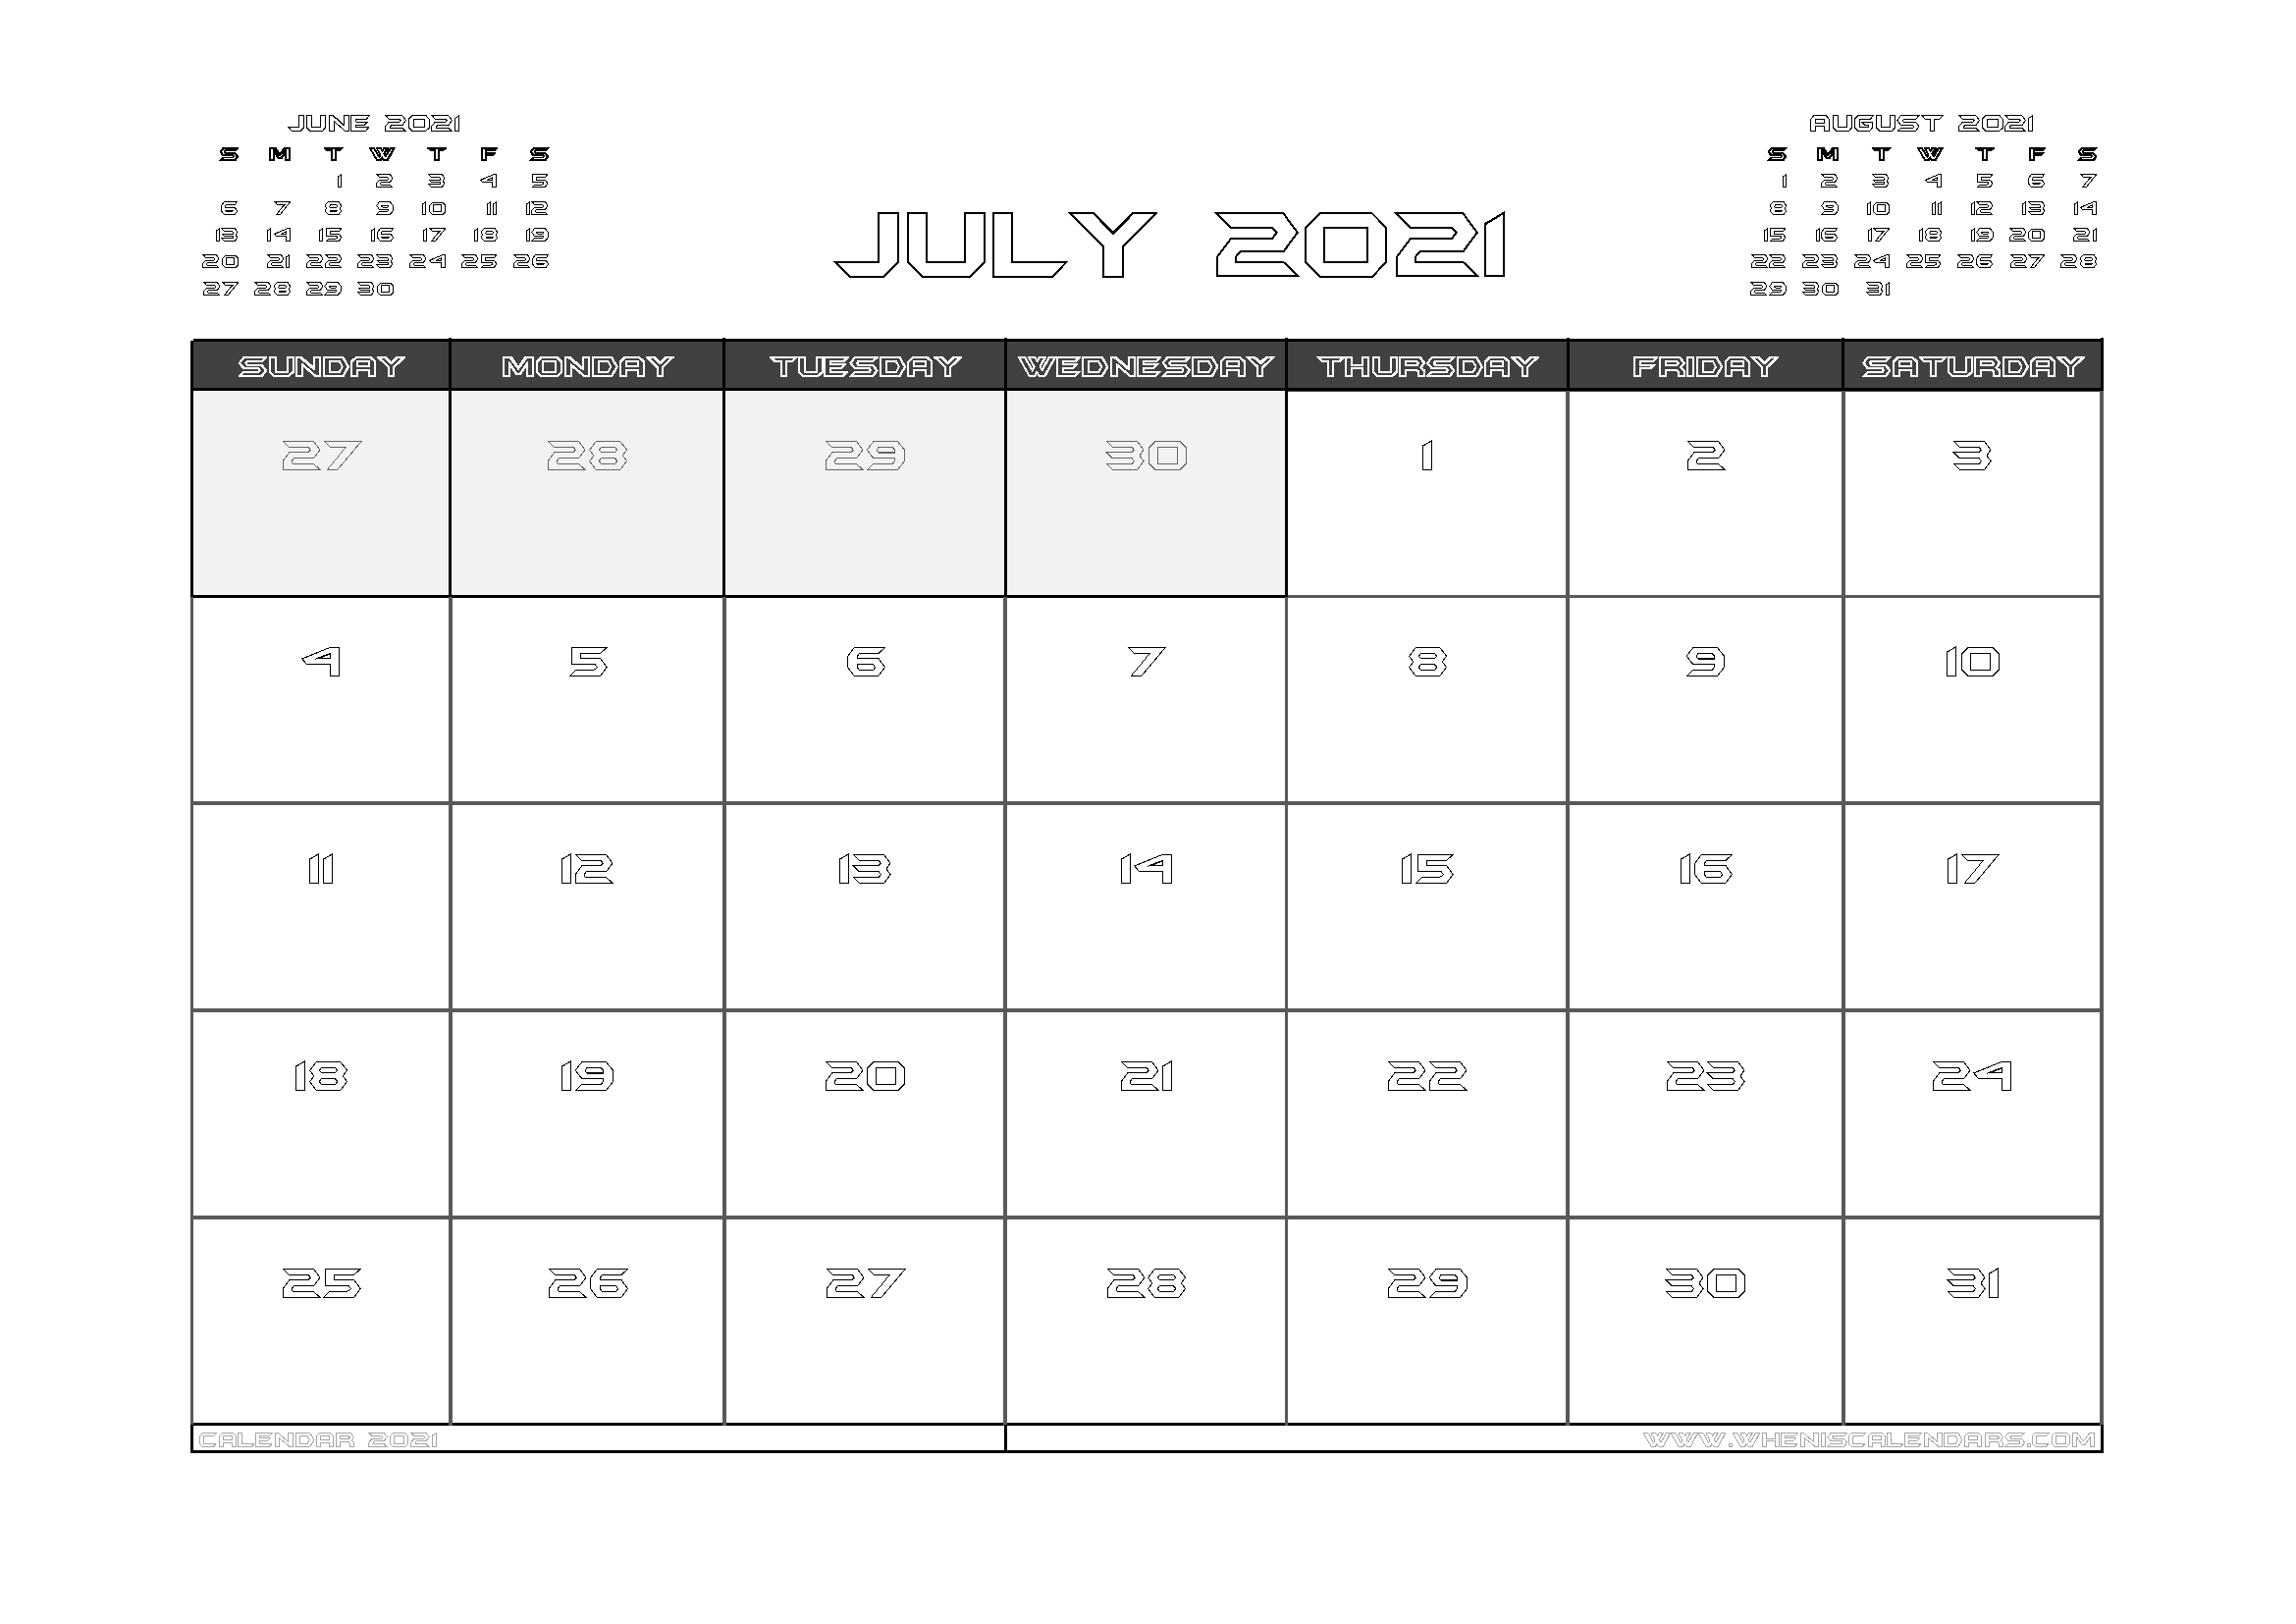 July 2021 Calendar Australia with Holidays